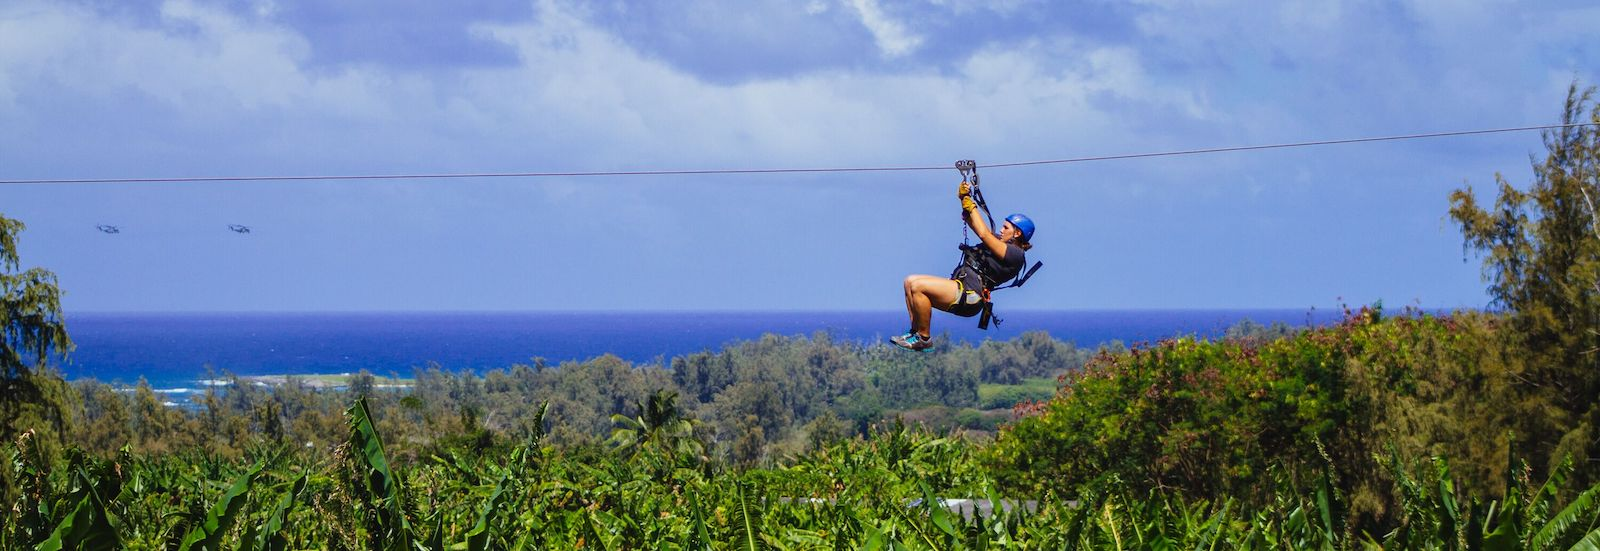 Top 4 Reasons Why Our Ziplines in Hawaii are Fun for a Solo Traveler